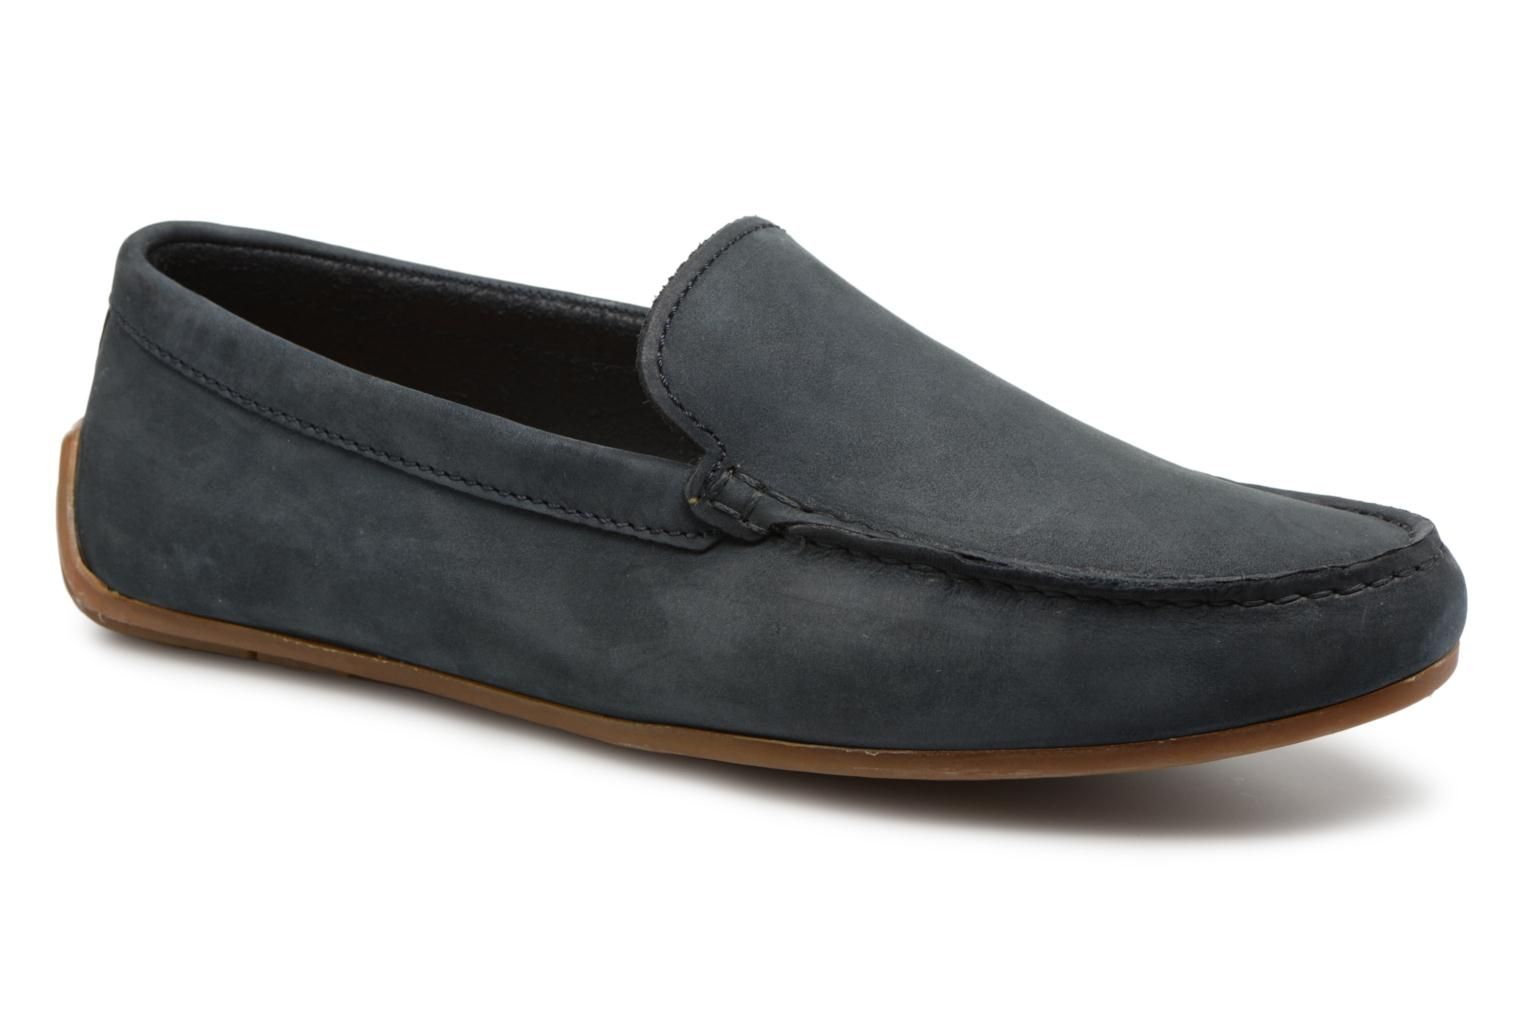 Marques Chaussure homme Clarks homme Reazor Edge Navy nubuck